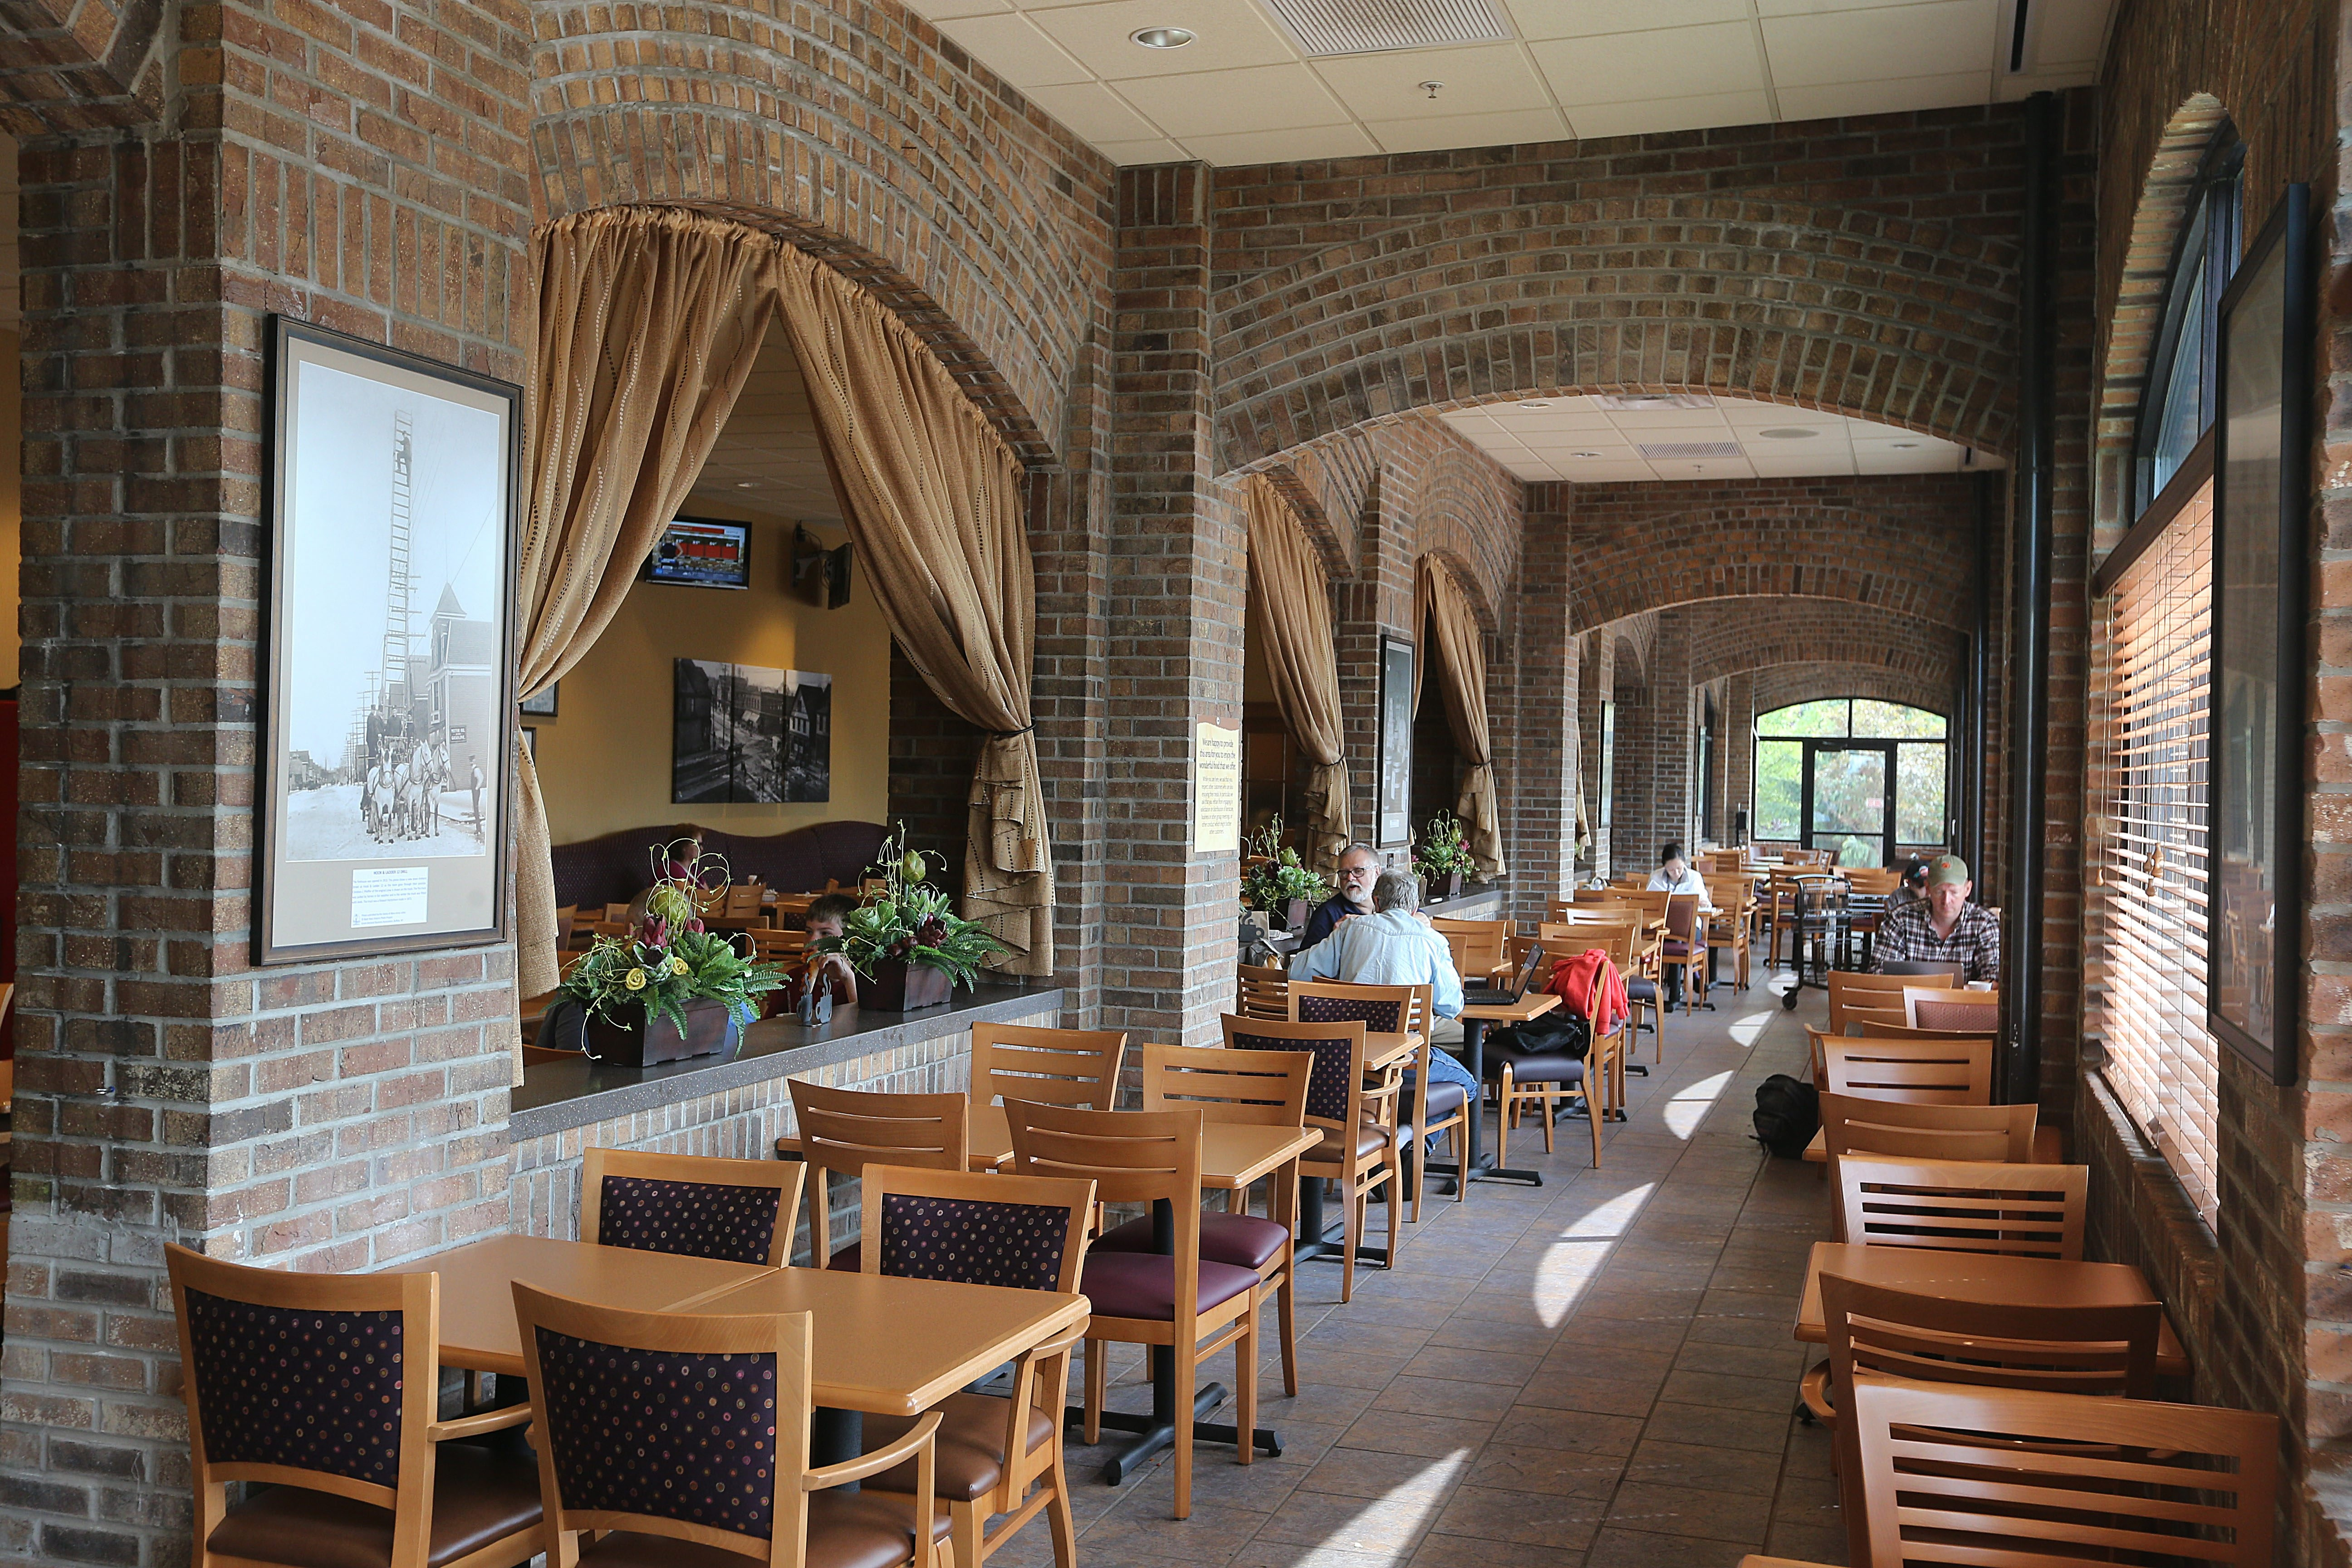 Customers sit in the recently renovated dining area at the Wegmans Supermarket on Amherst Street in Buffalo.